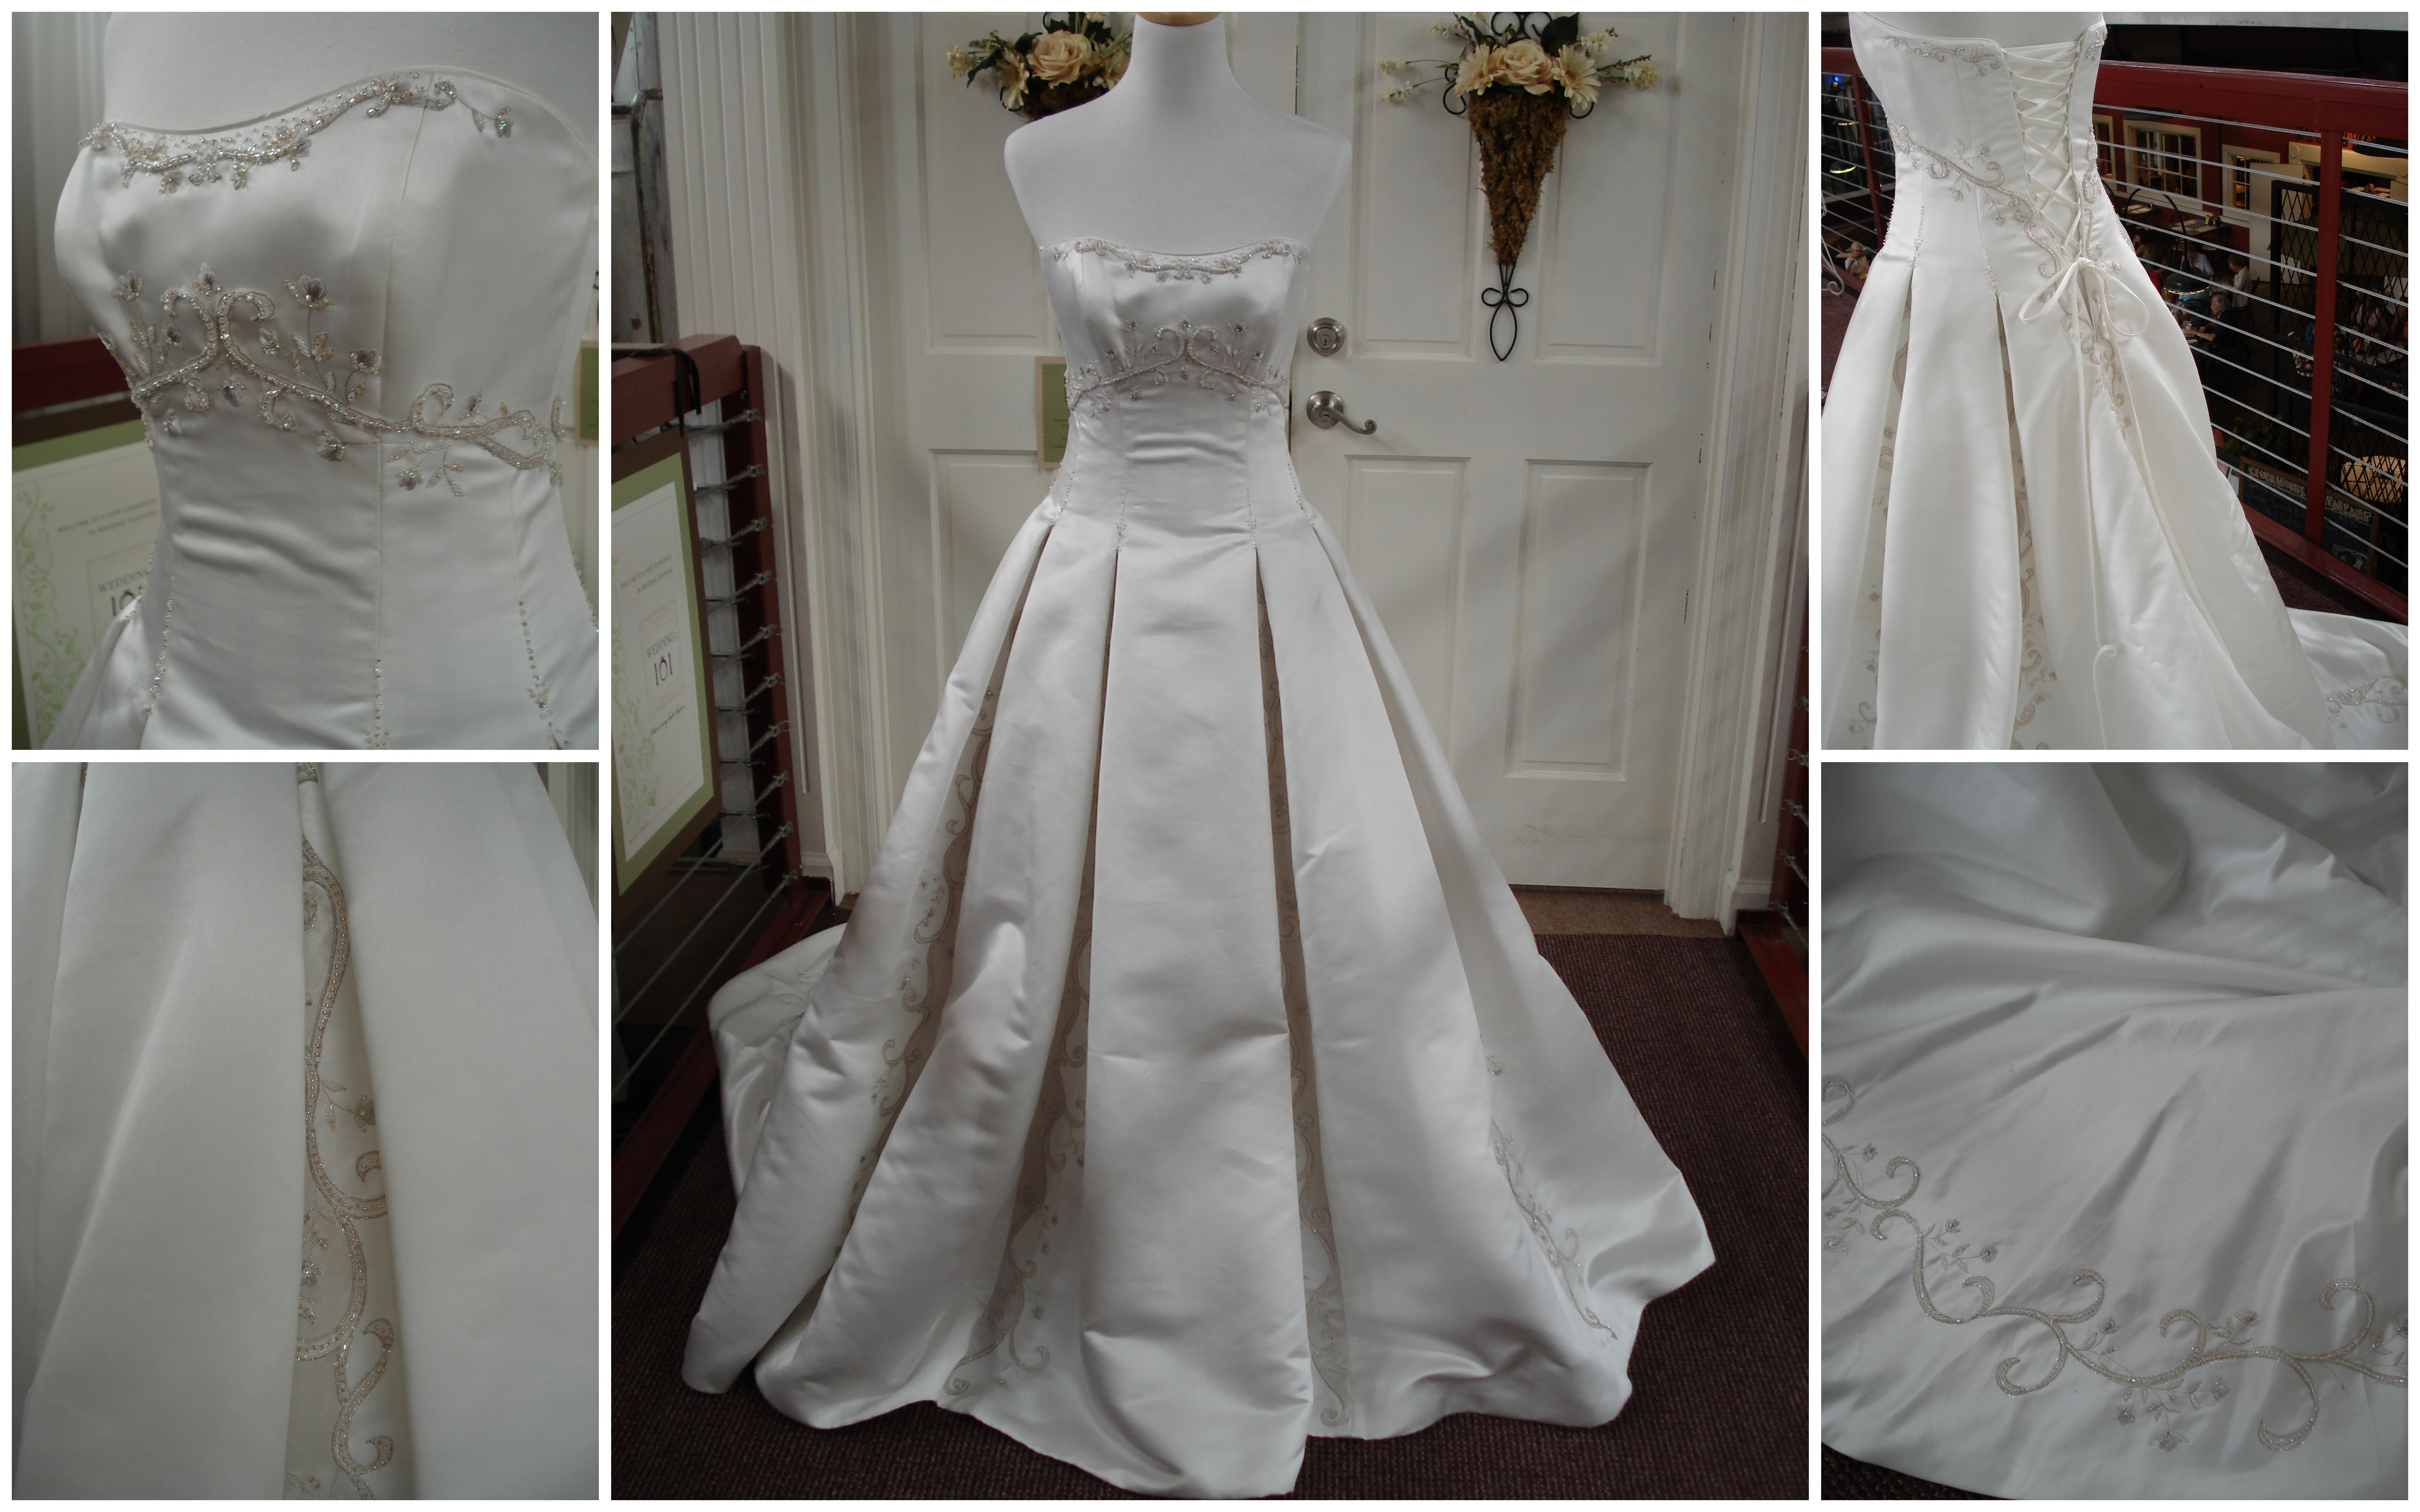 Simple Wedding Dresses For Justice Of The Peace: Wedding 101 Bridal Expo And Silent Auction: Gown Sneak